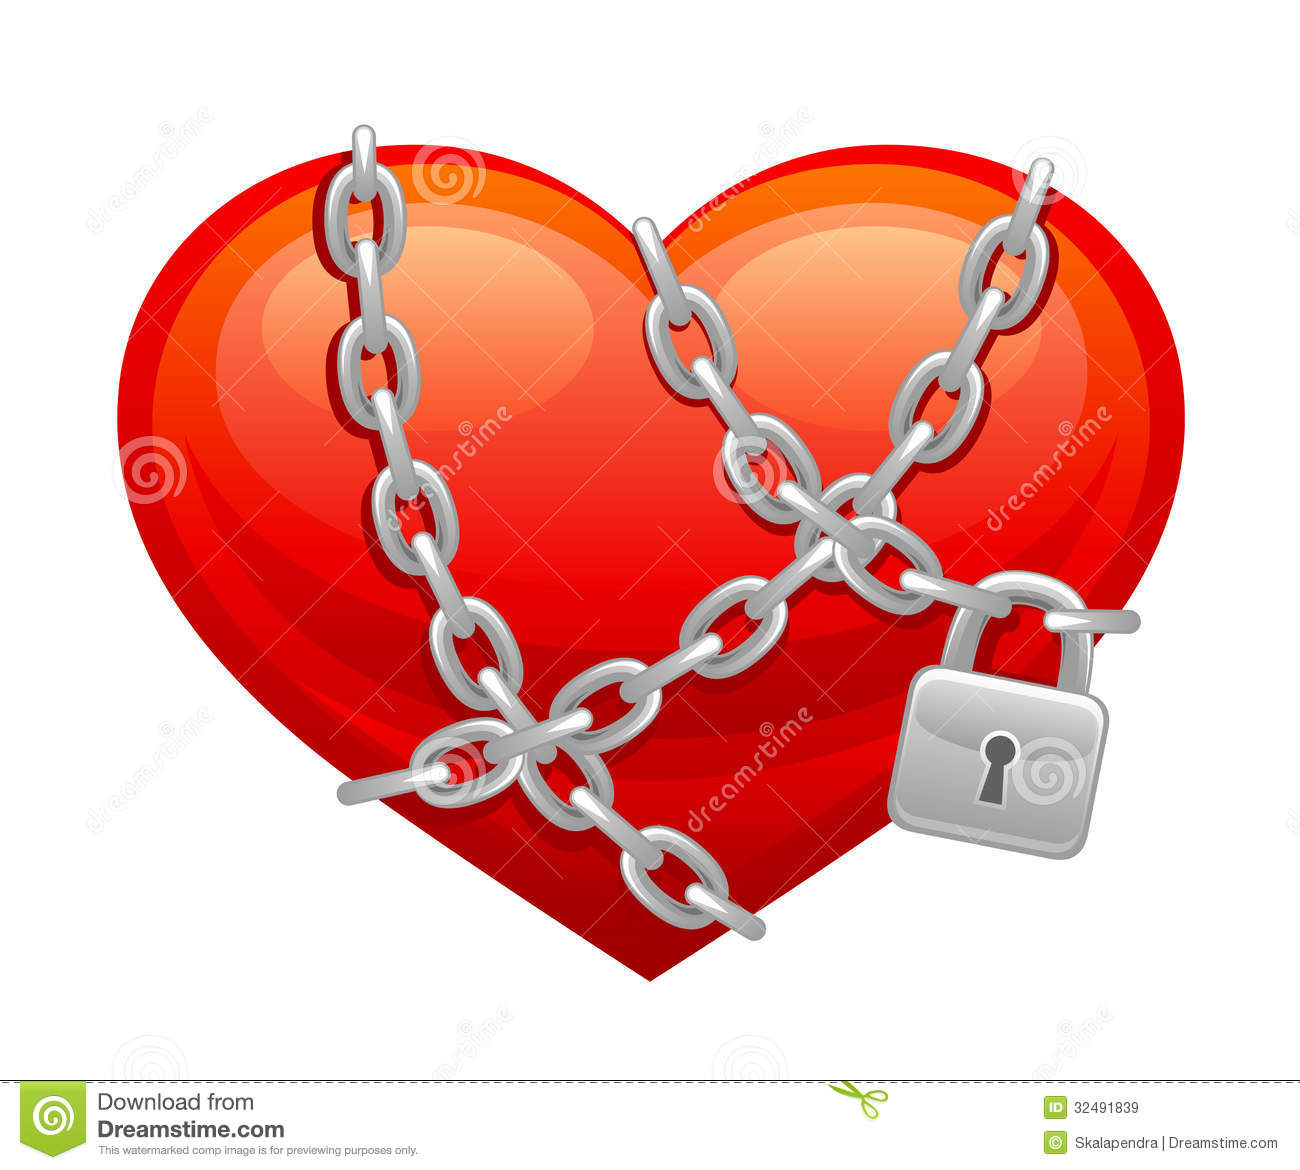 Locked heart stock vector. Illustration of love, grey ...